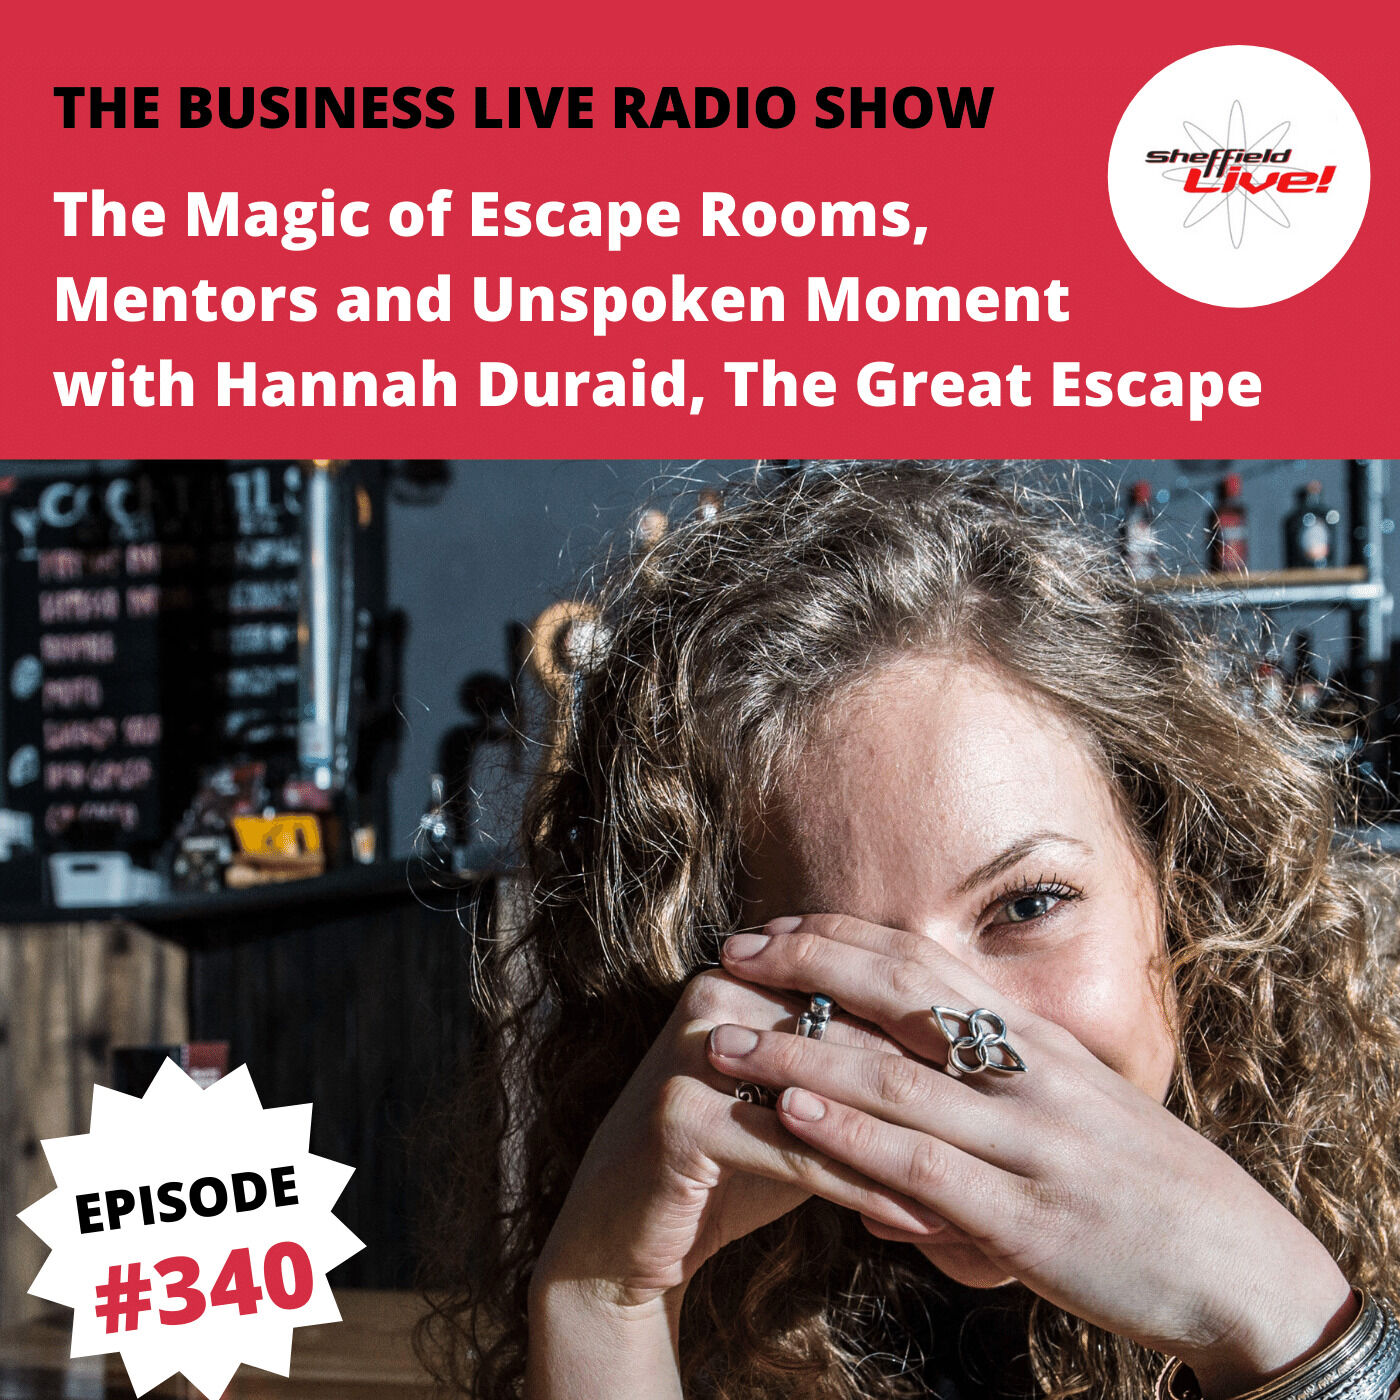 The Magic of Escape Rooms, Mentors and Unspoken Moments with Hannah Duraid